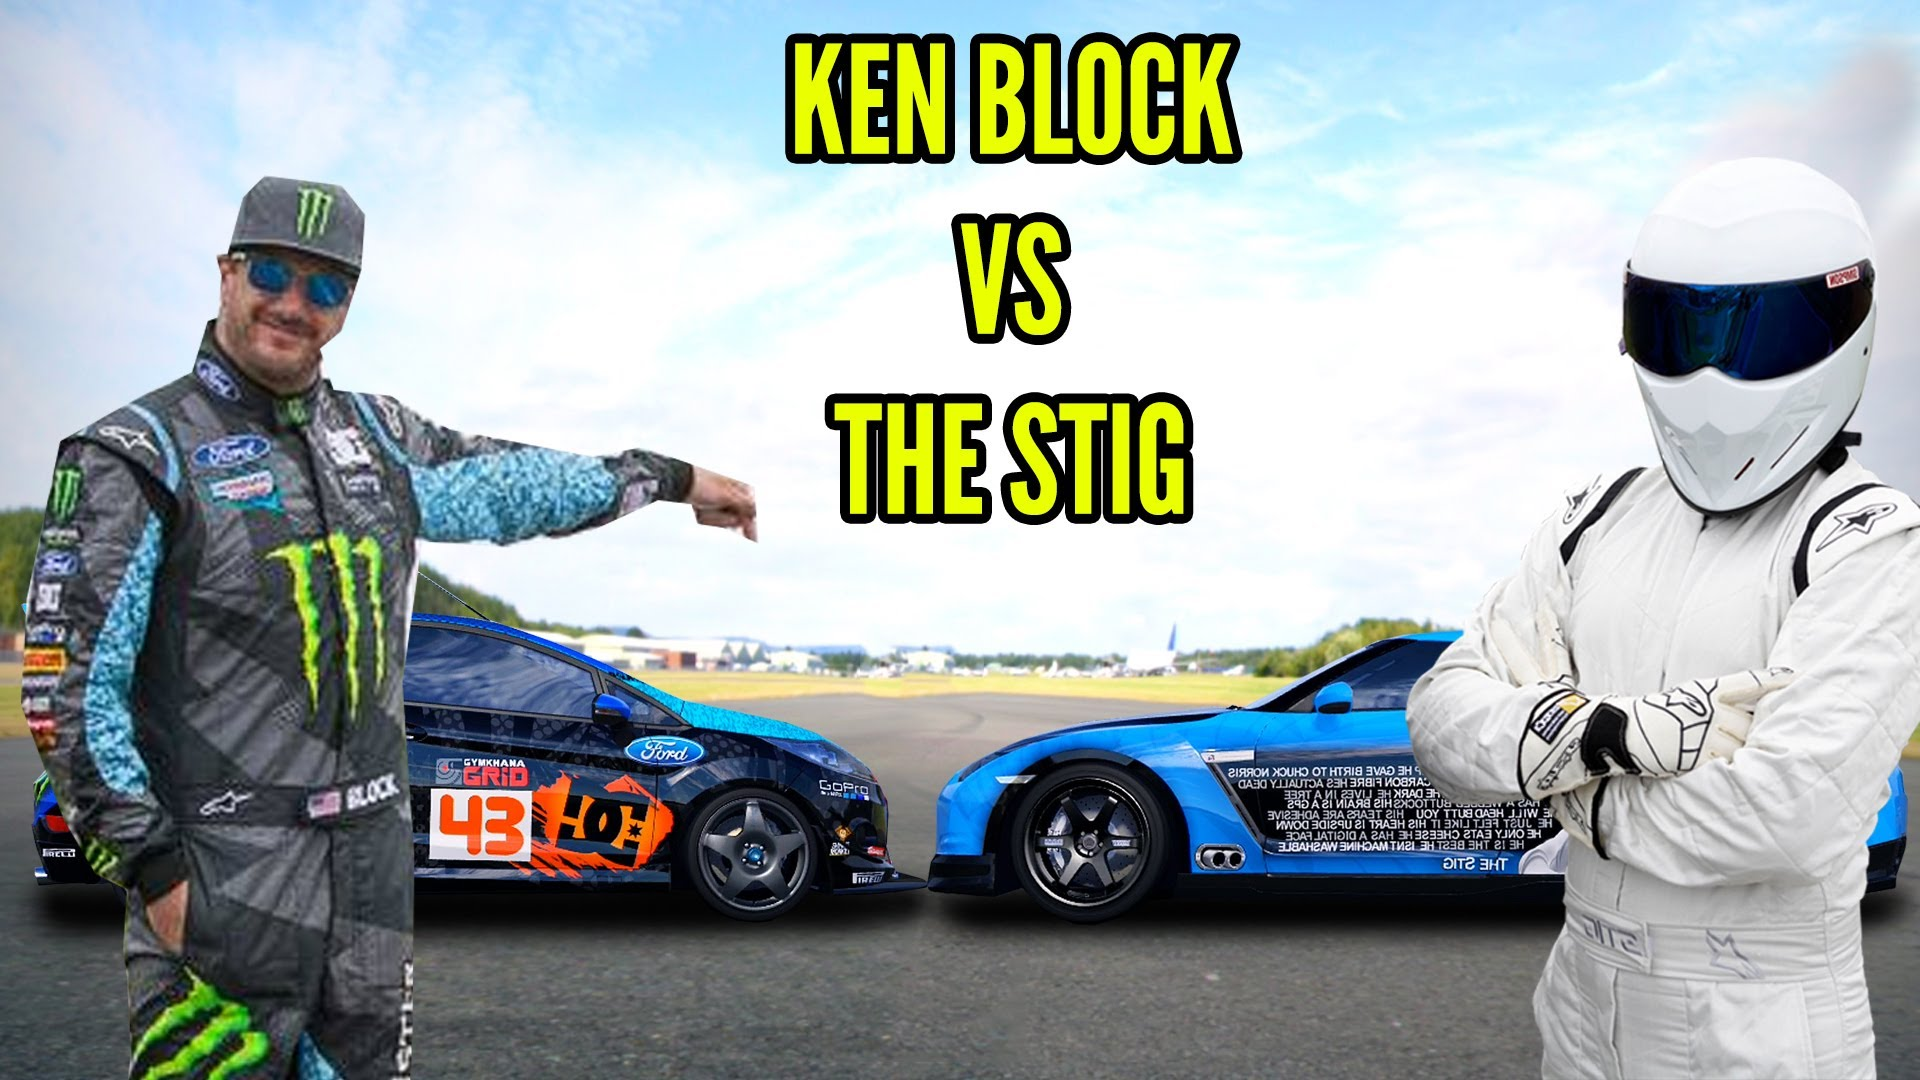 Forza 4: Ken Block VS The Stig Ultimate Showdown